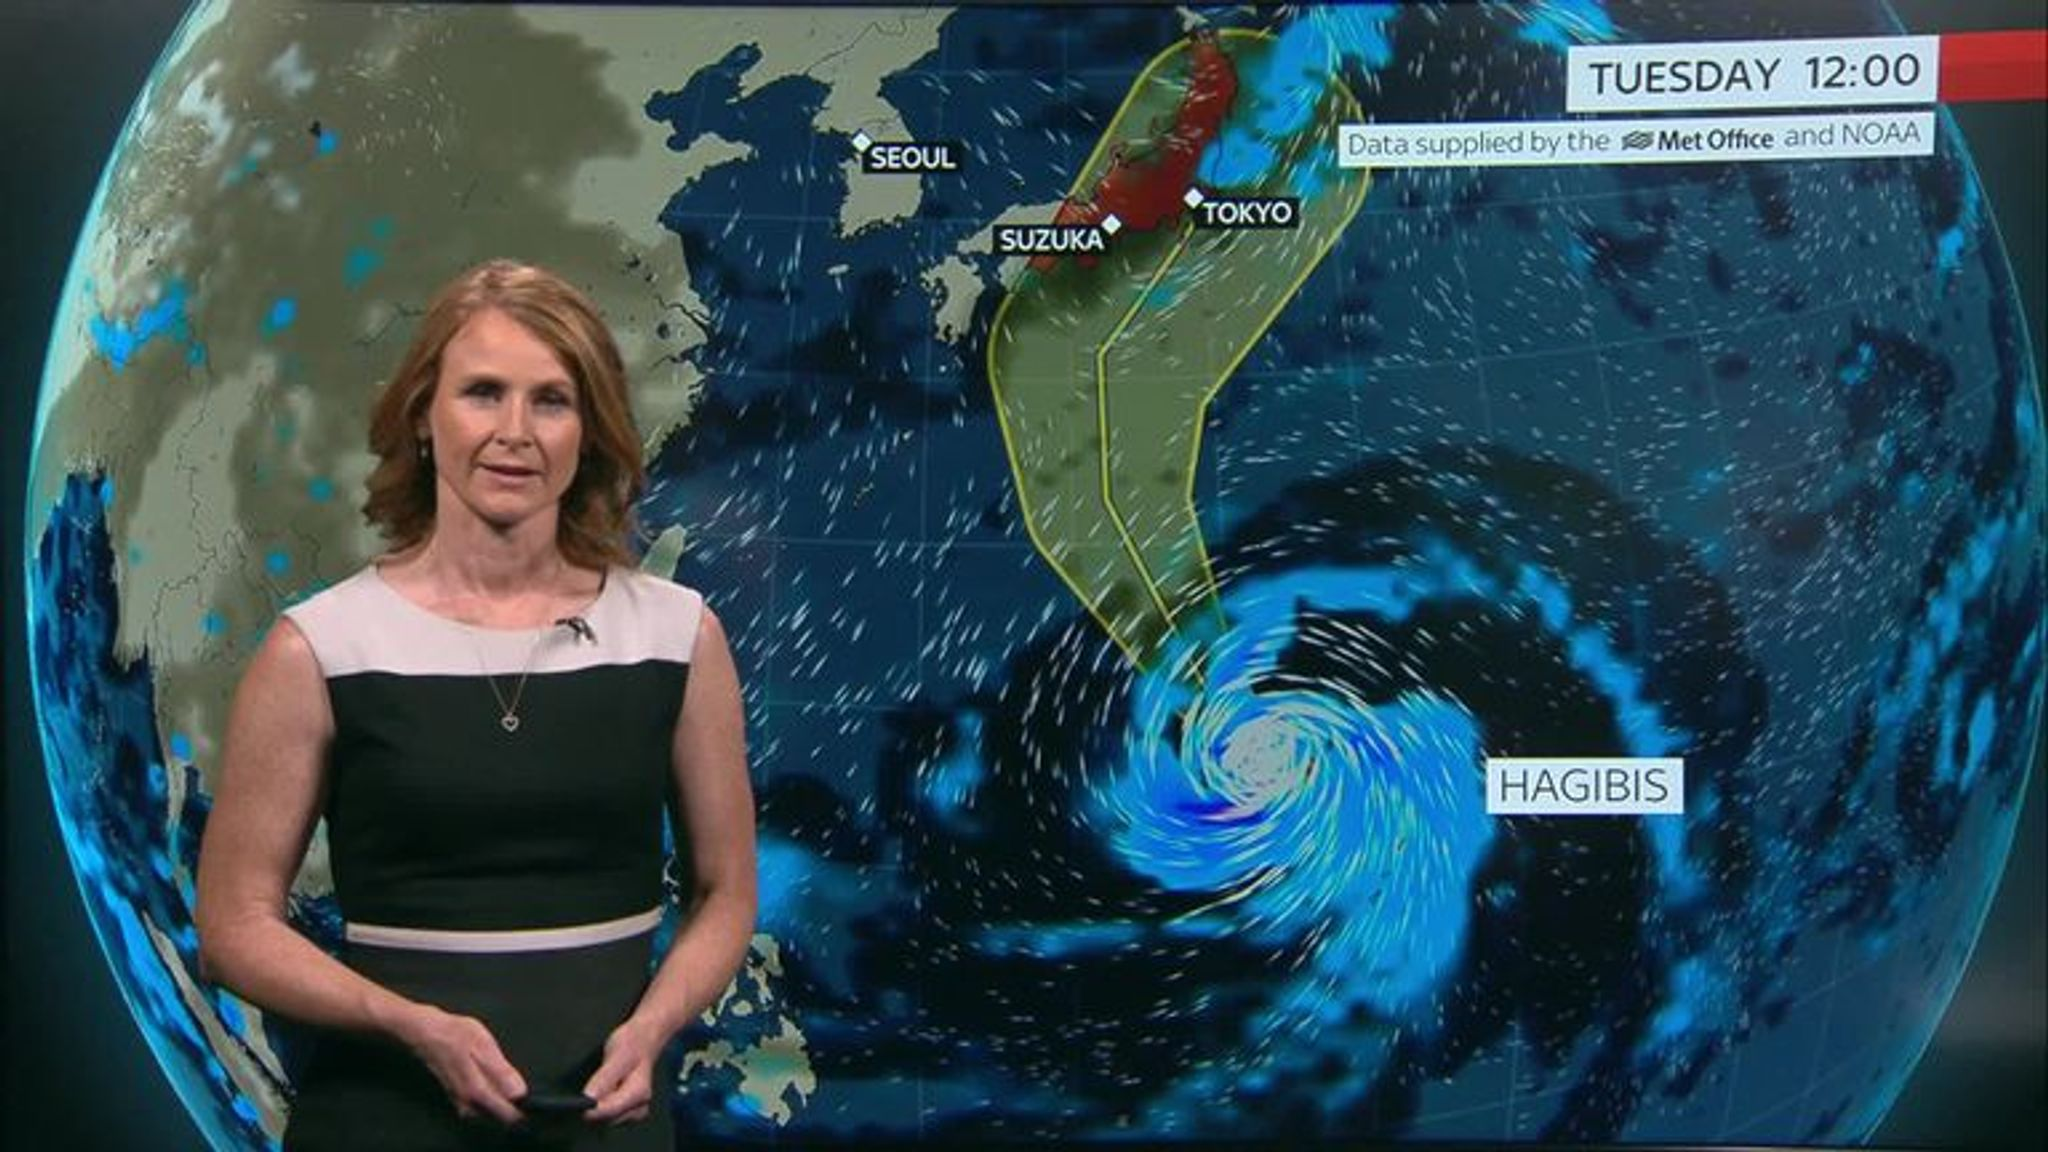 Typhoon Hagibis sets in as Japan braces itself for severe weather at Rugby World Cup